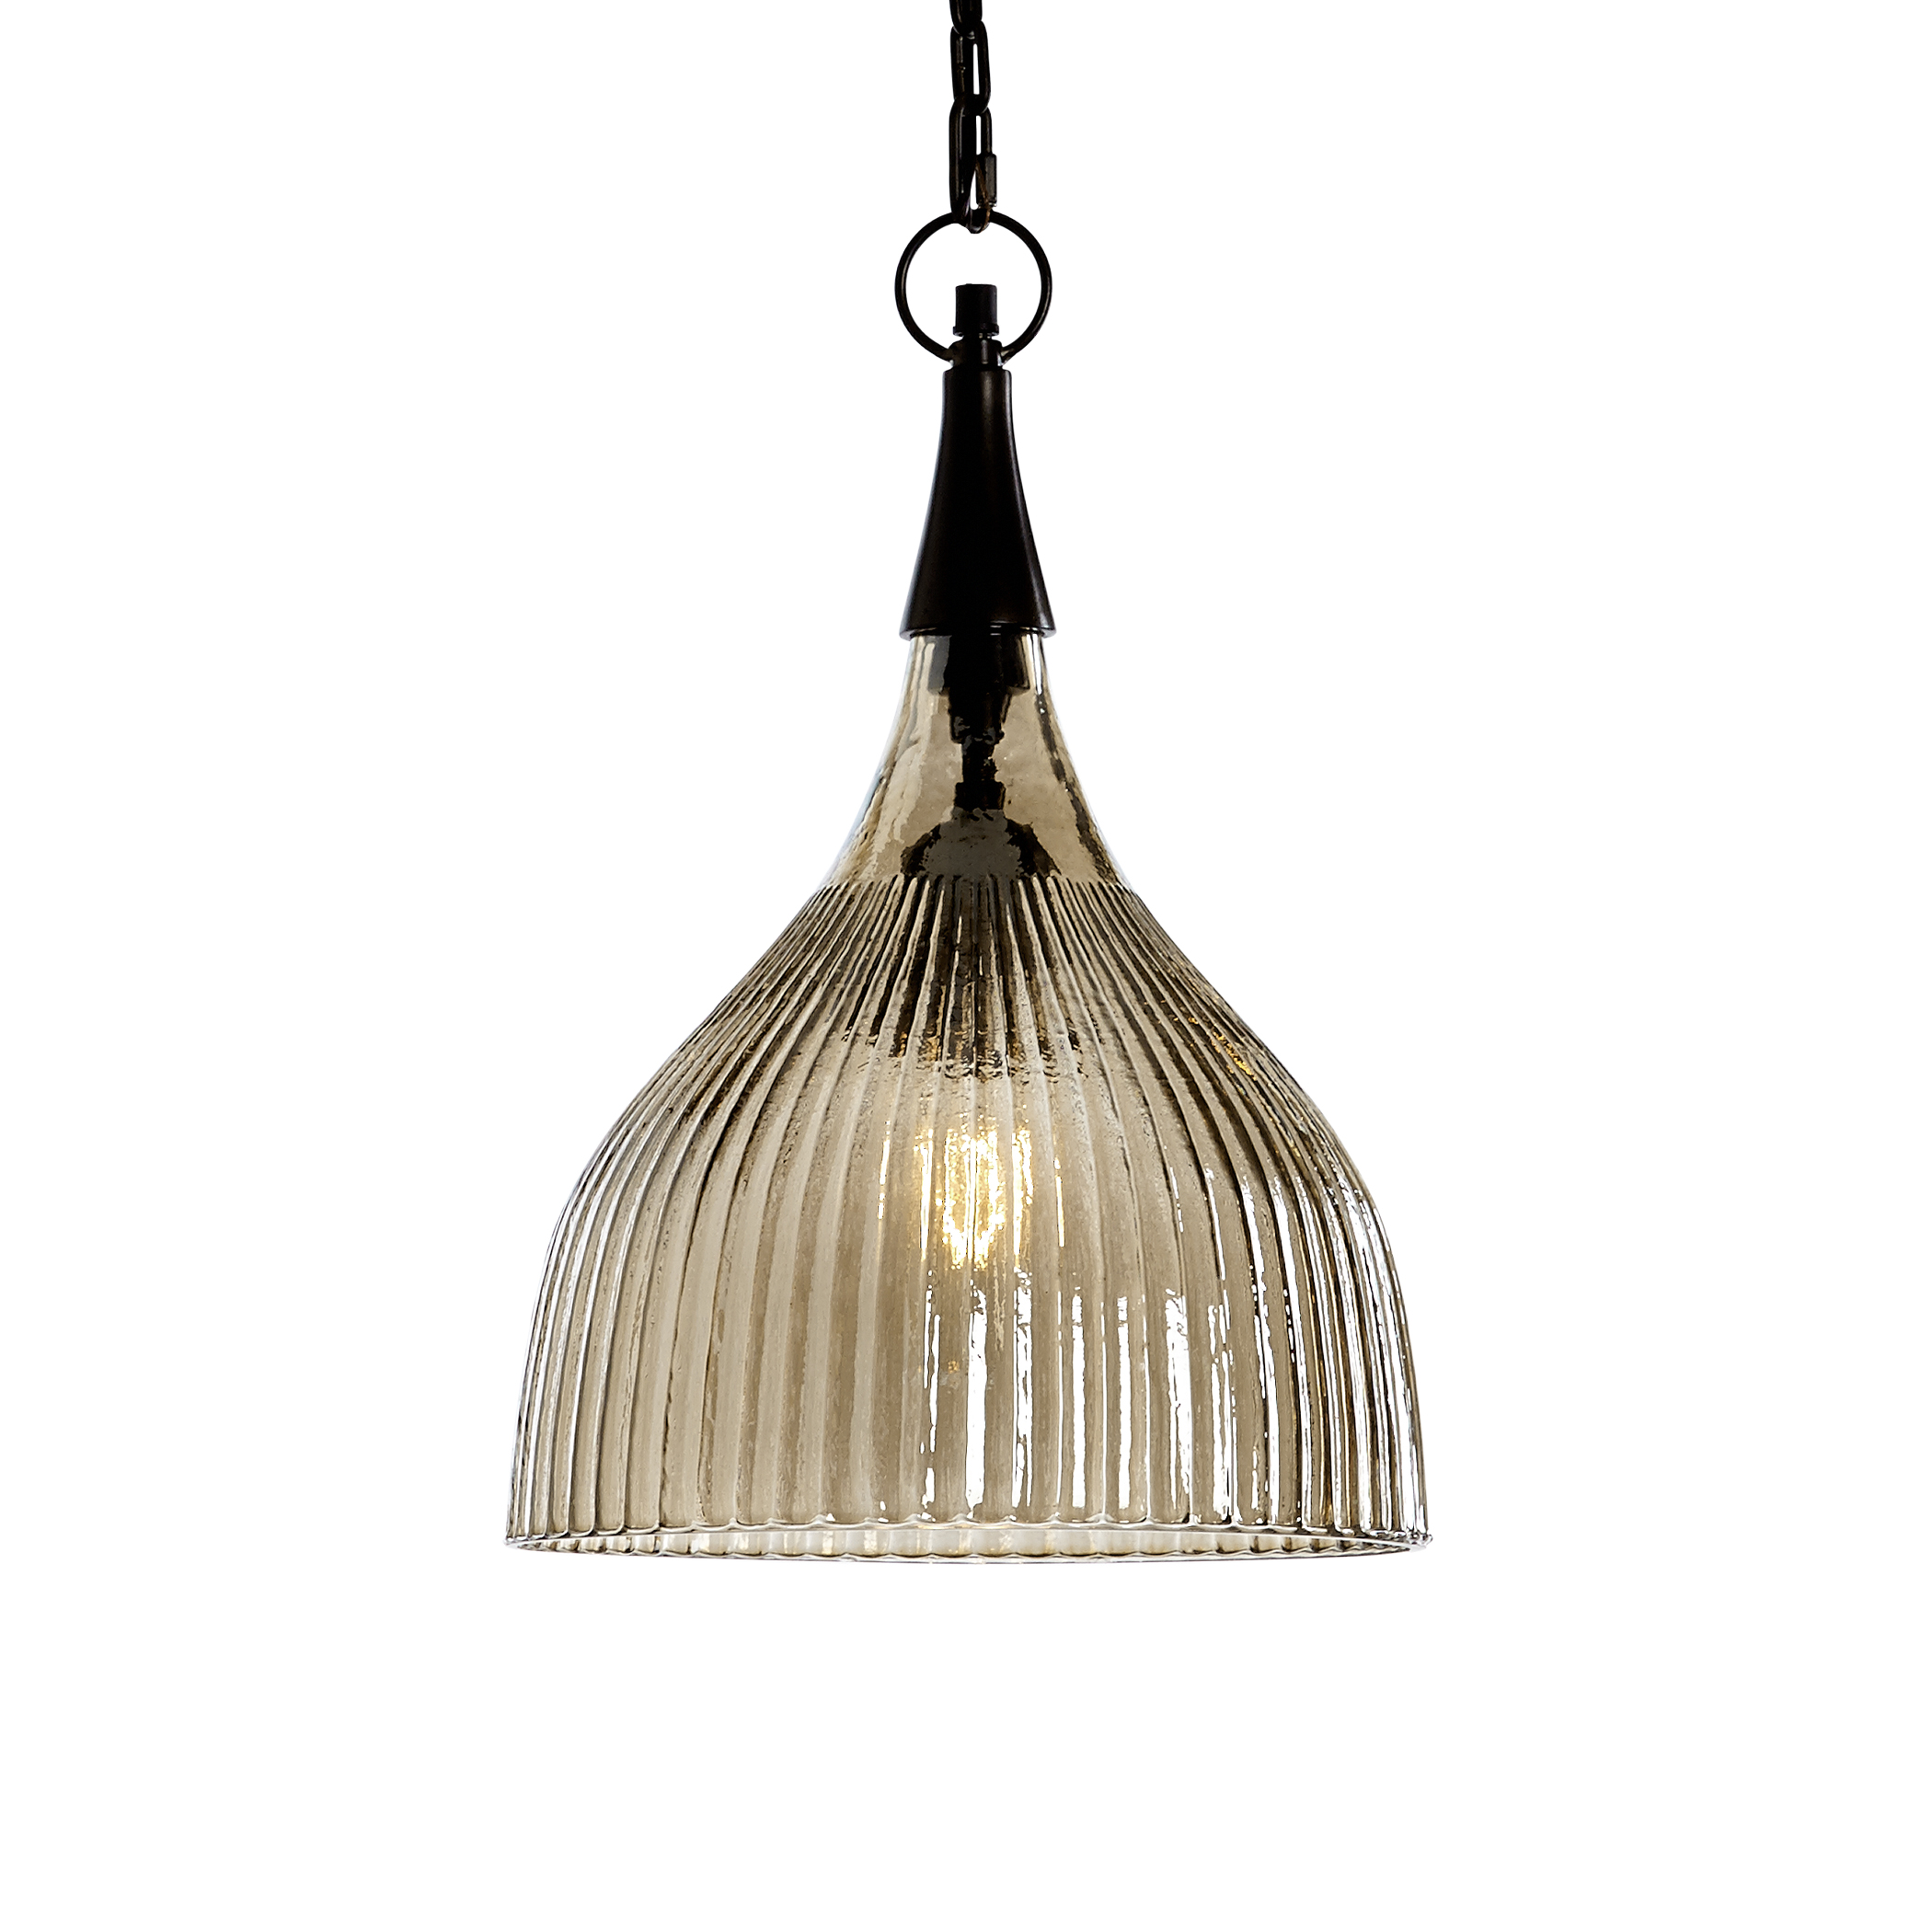 Uttermost Lighting Fixtures Nuvolo 1 Light Glass Mini Pendant - Item Number: 22036